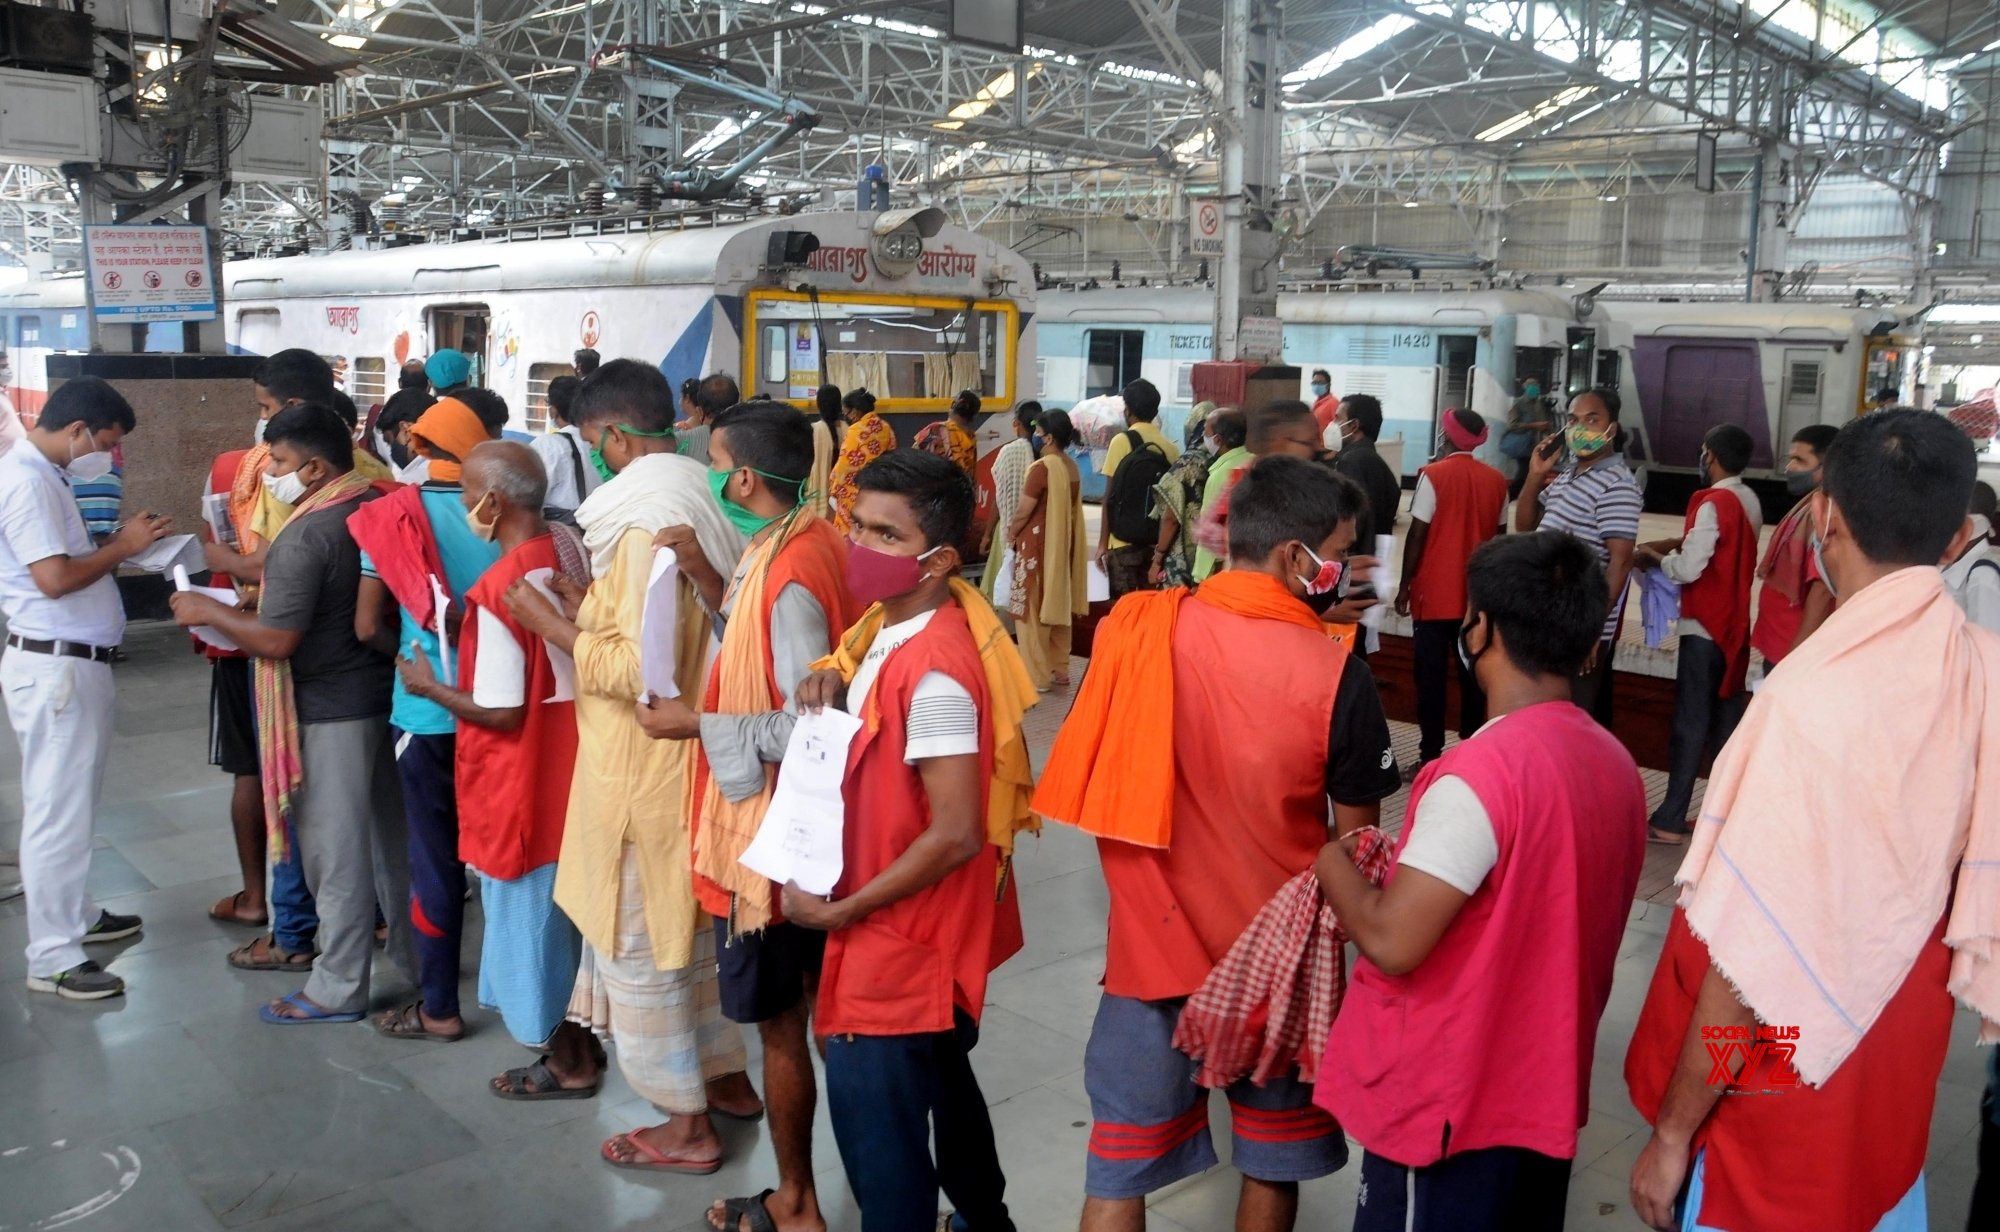 Kolkata: Eastern division of the Indian railway launched a mobile vaccination center named Arogya to provide vaccination, at Sealdah in Kolkata. #Gallery